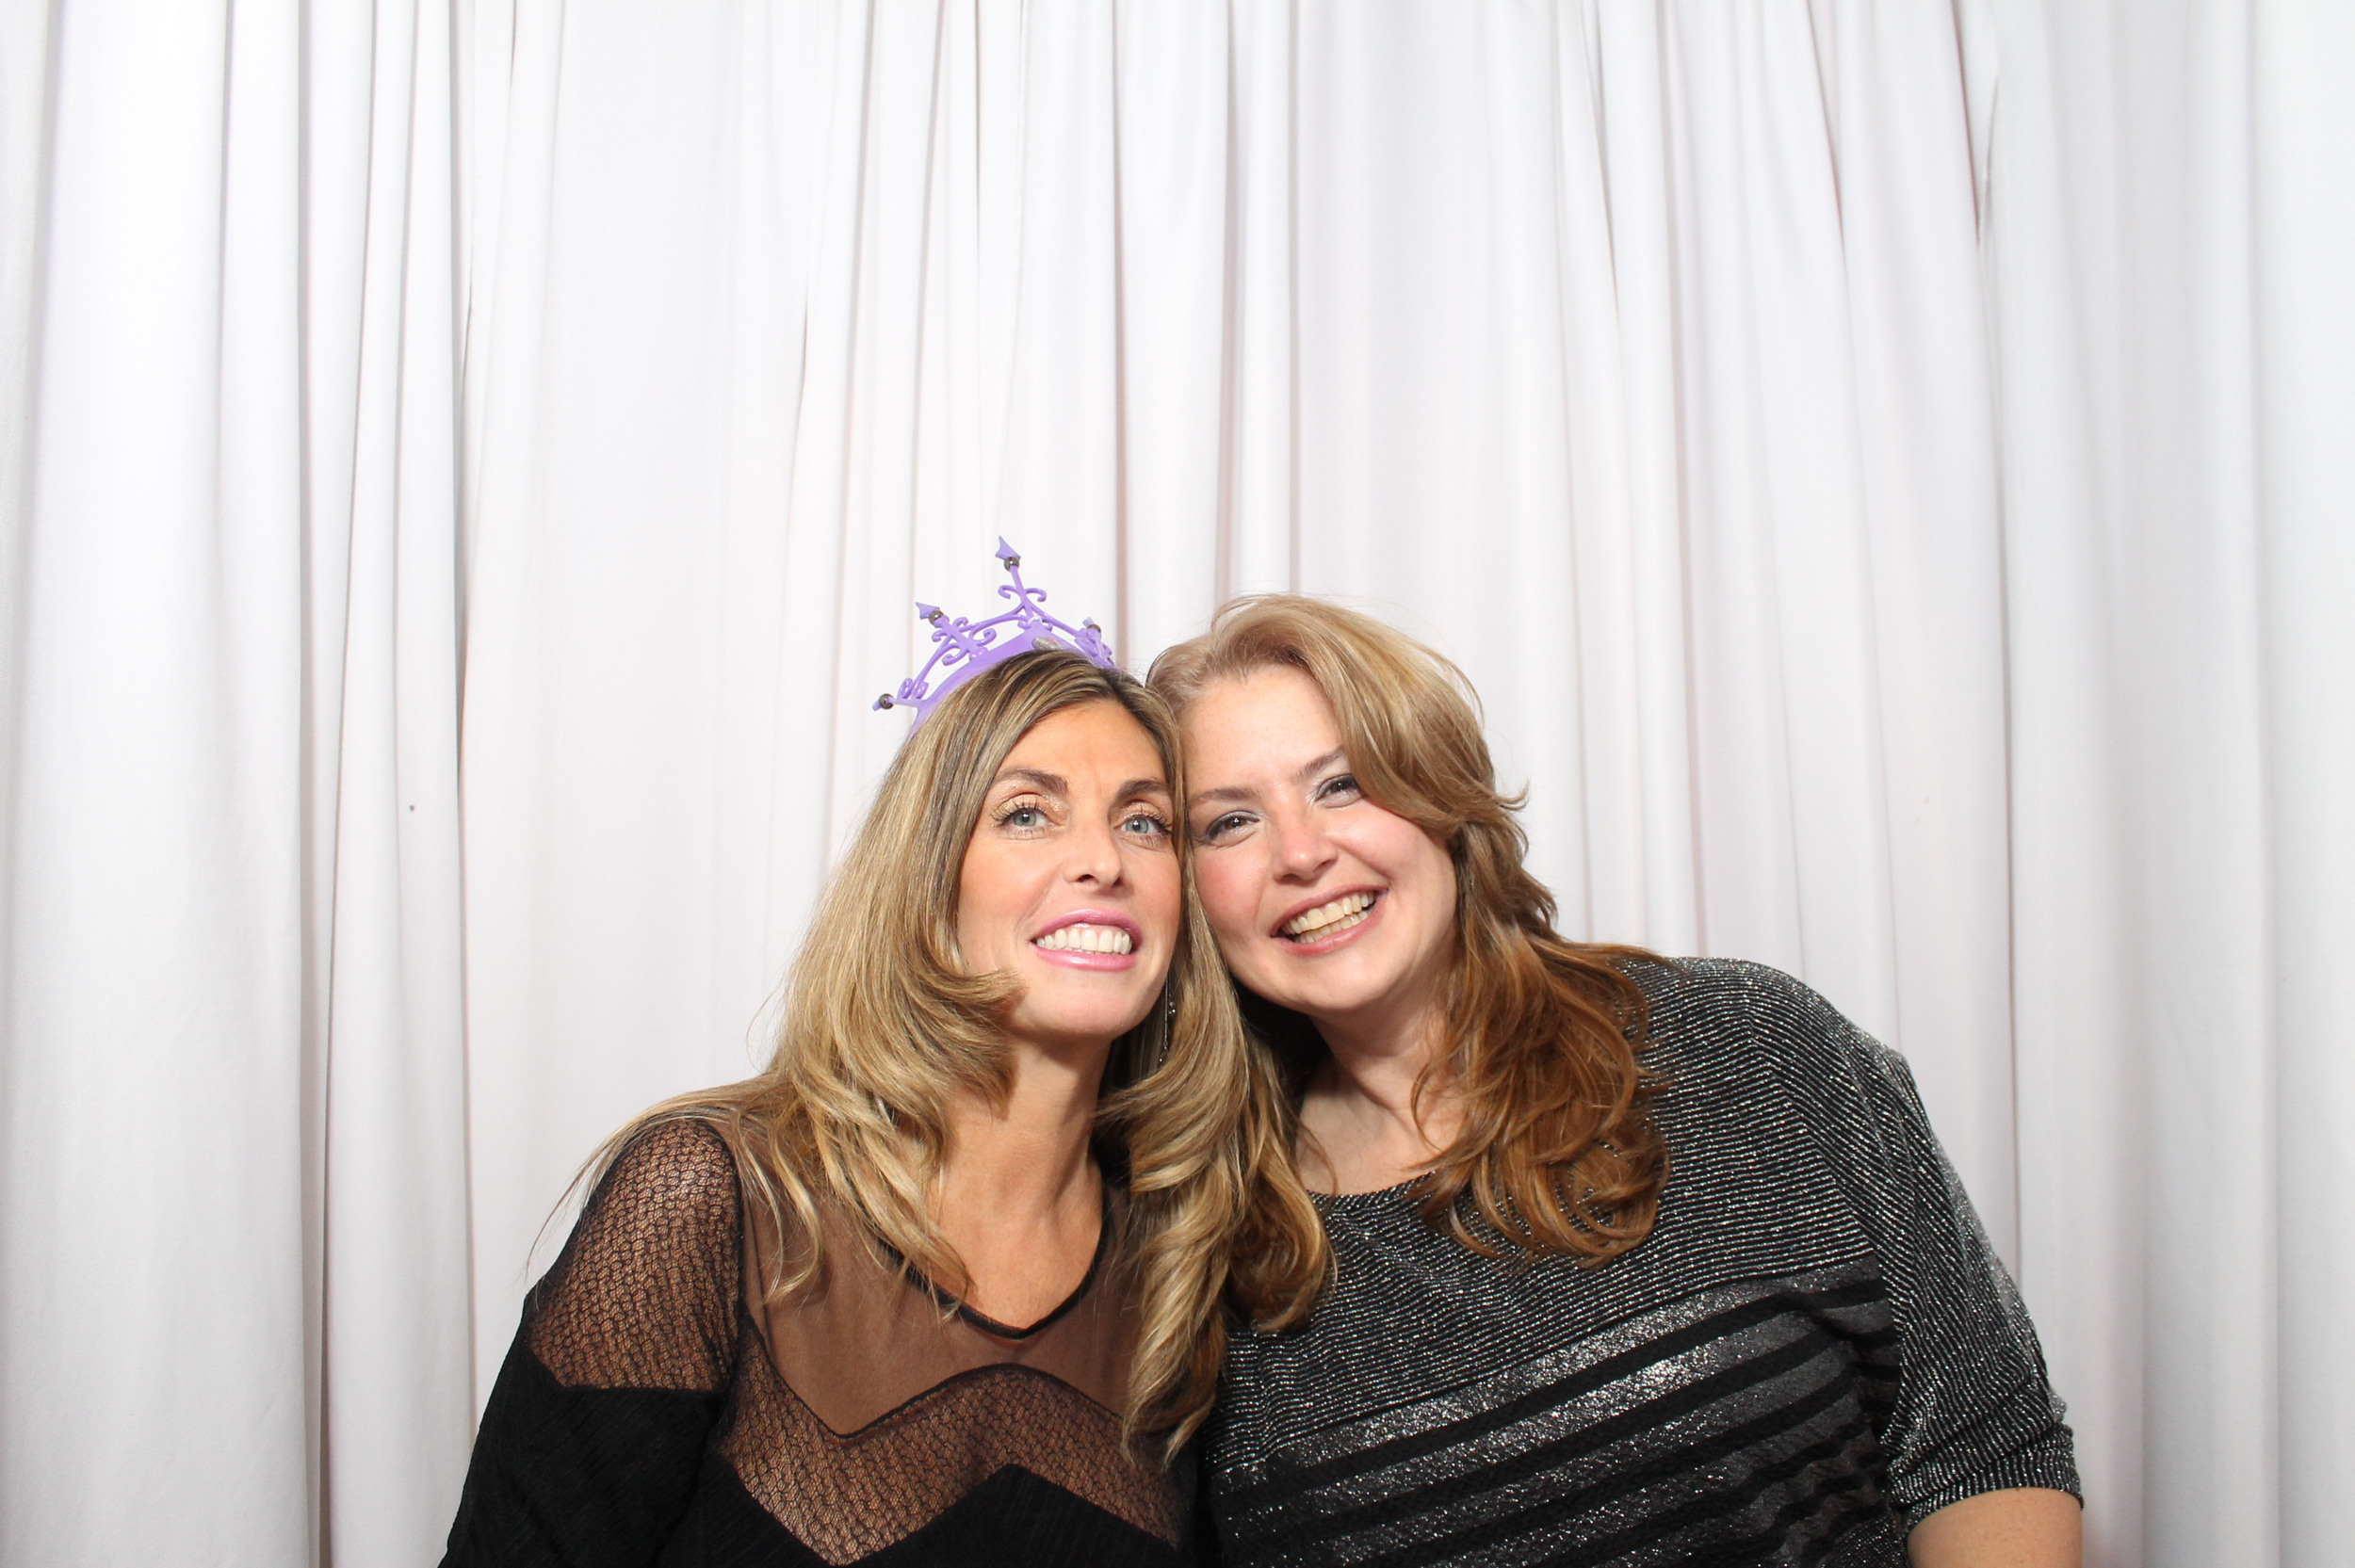 Snapshot Photobooths at Addison Park in Aberdeen, New Jersey